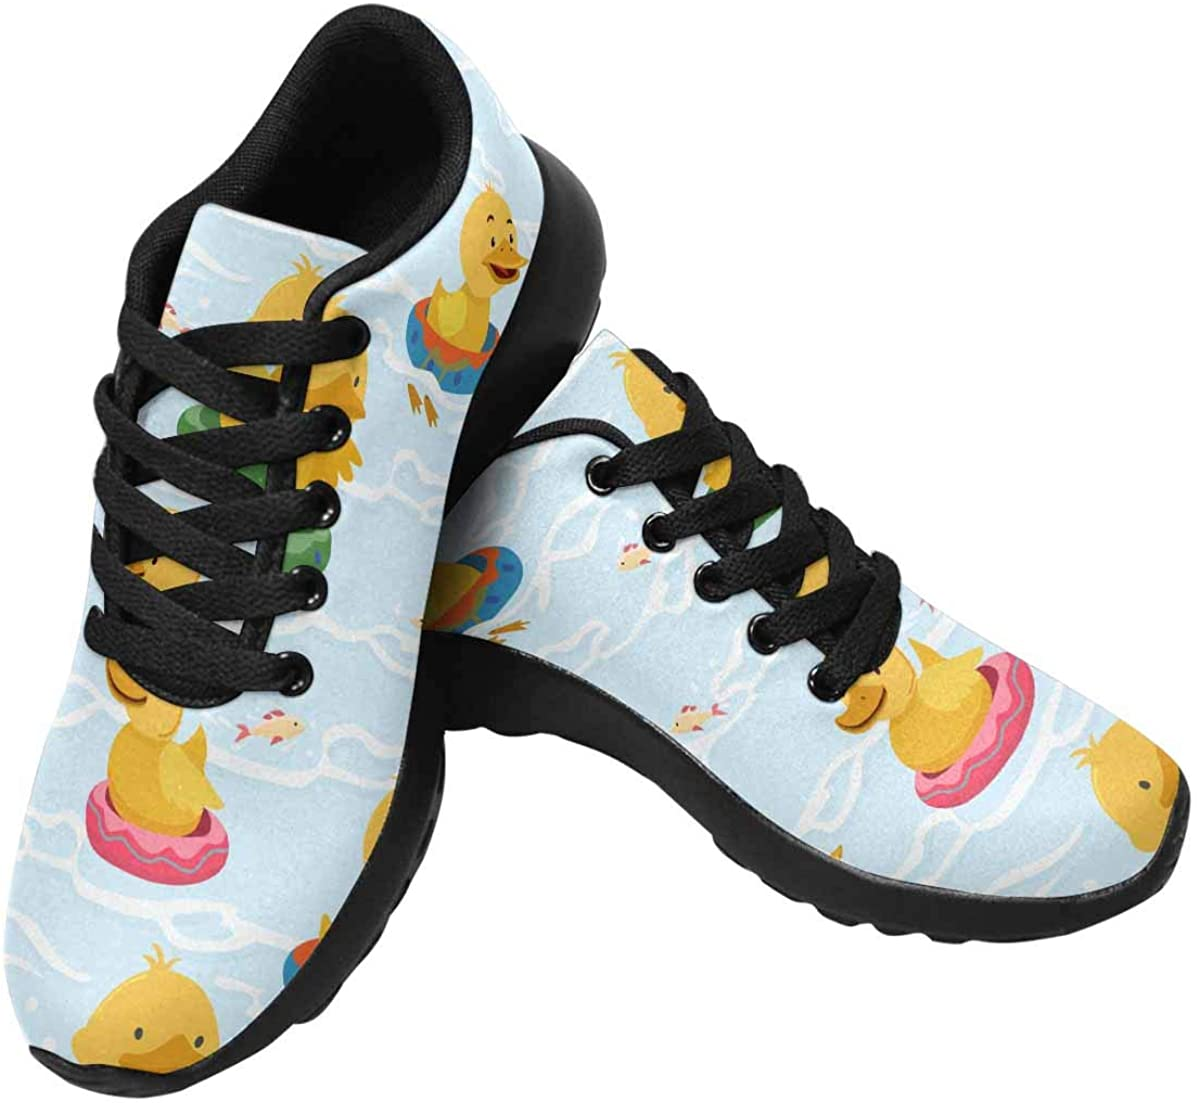 InterestPrint Women's Running Shoes - Casual Breathable Athletic Tennis Sneakers (US6-US15)